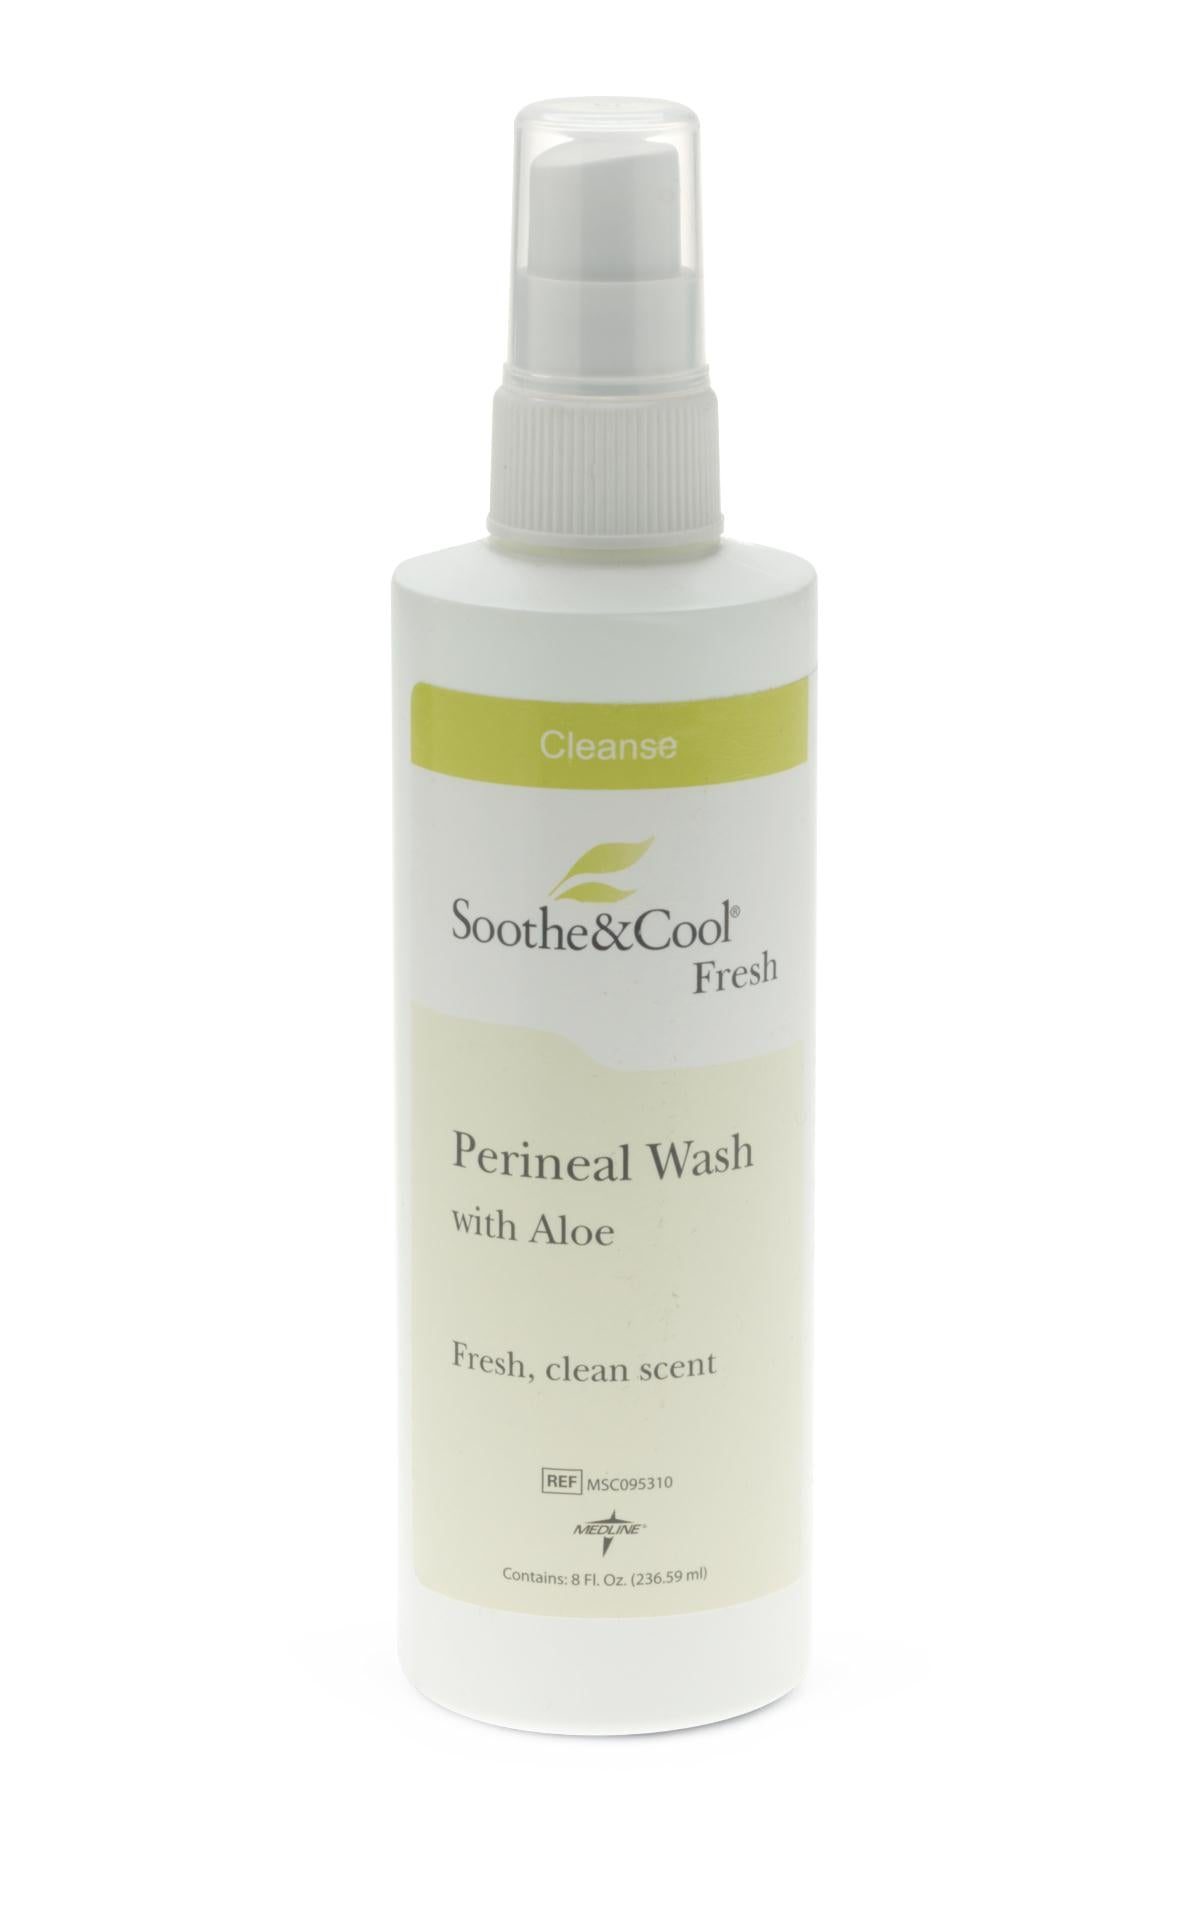 Soothe & Cool Perineal Spray Wash - 8 oz.